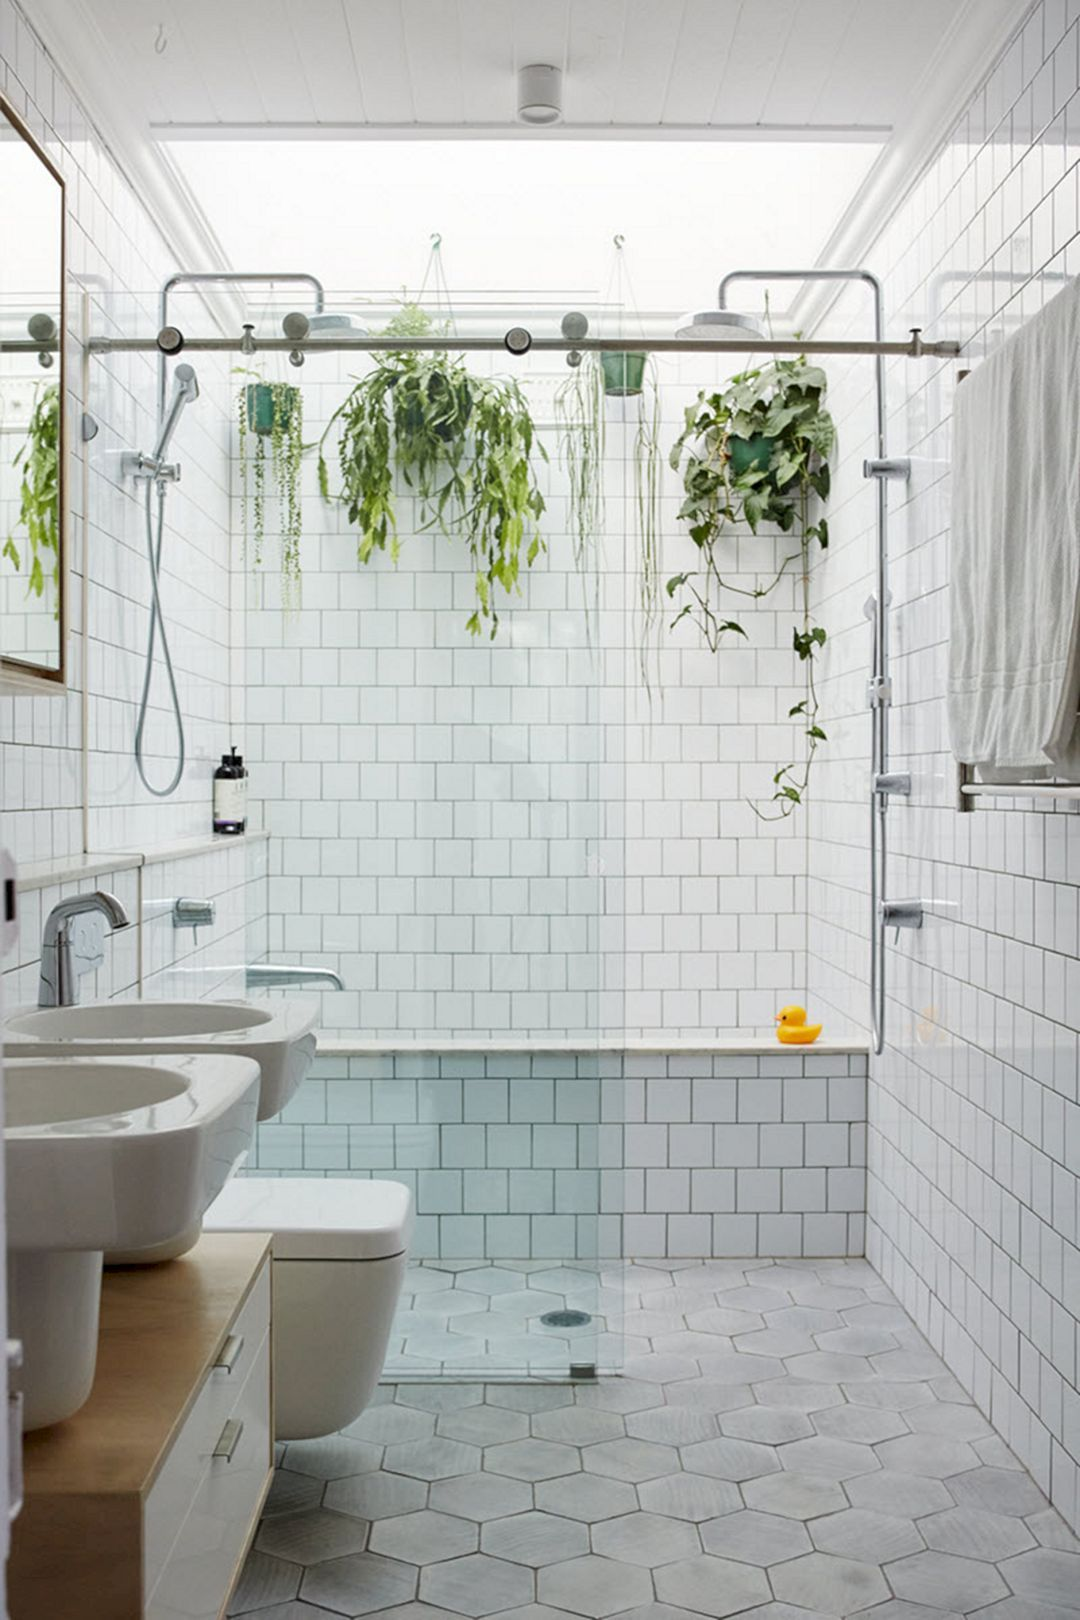 Beautiful Bathroom With Hanging Plants Ideas Bathroomhangingplants Bathroomwithhangingplan Amazing Bathrooms Bathroom Plants Beautiful Bathrooms